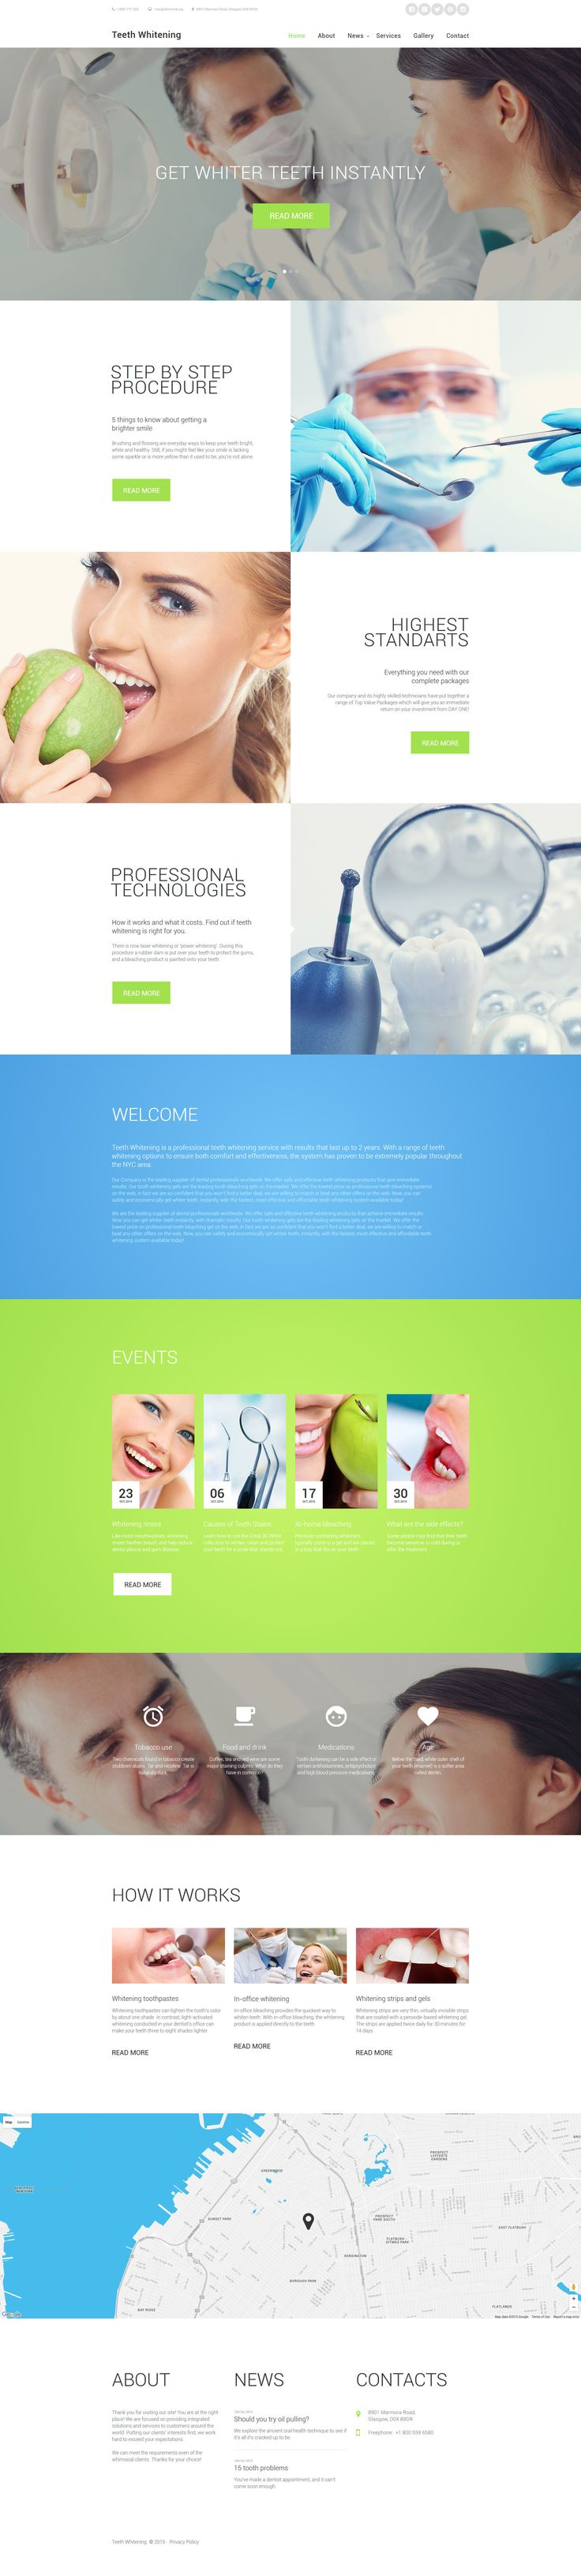 Dentist Website Template  http://www.templatemonster.com/website-templates/58563.html #html #html5